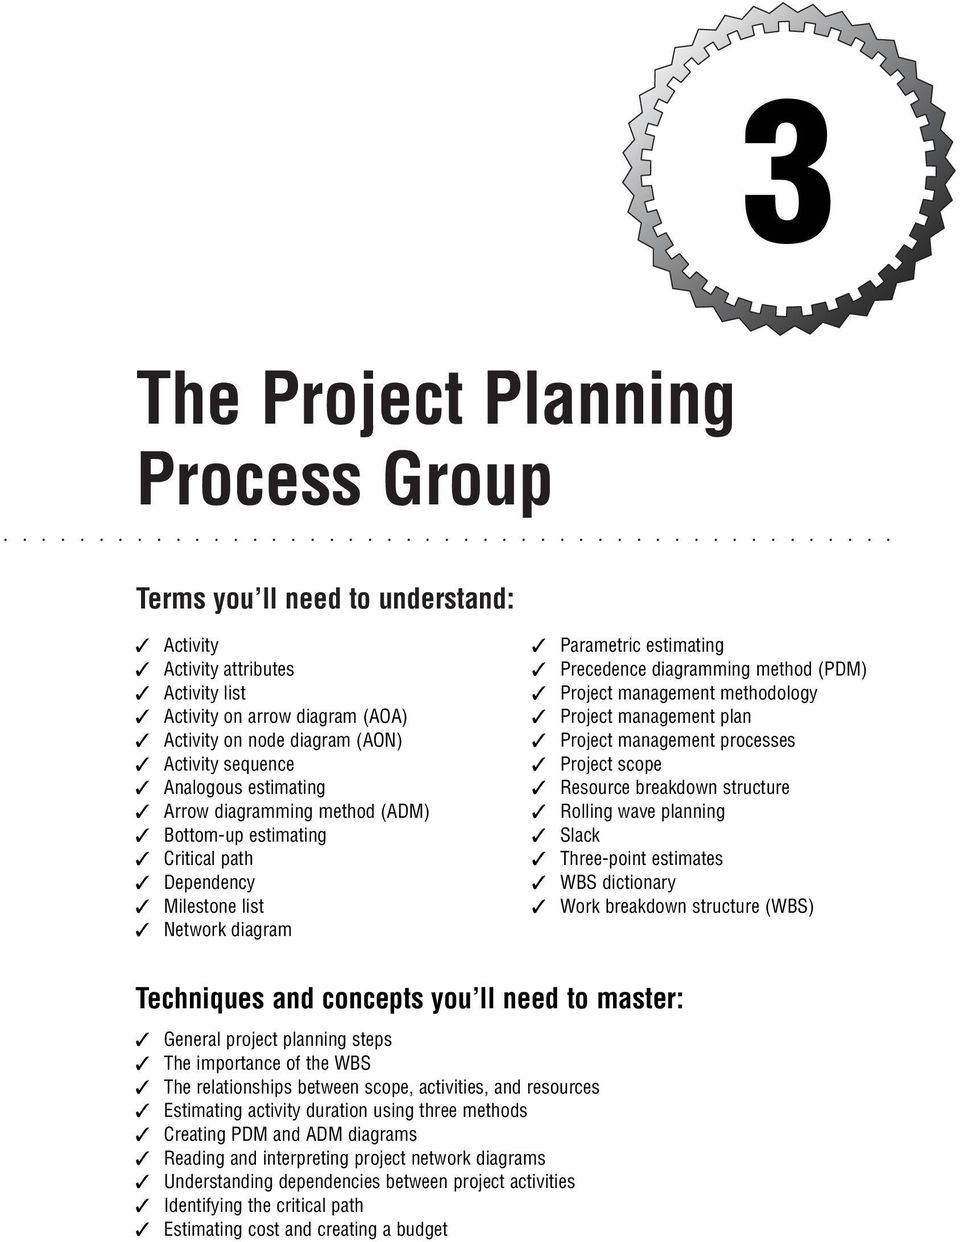 The Project Planning Process Group - PDF